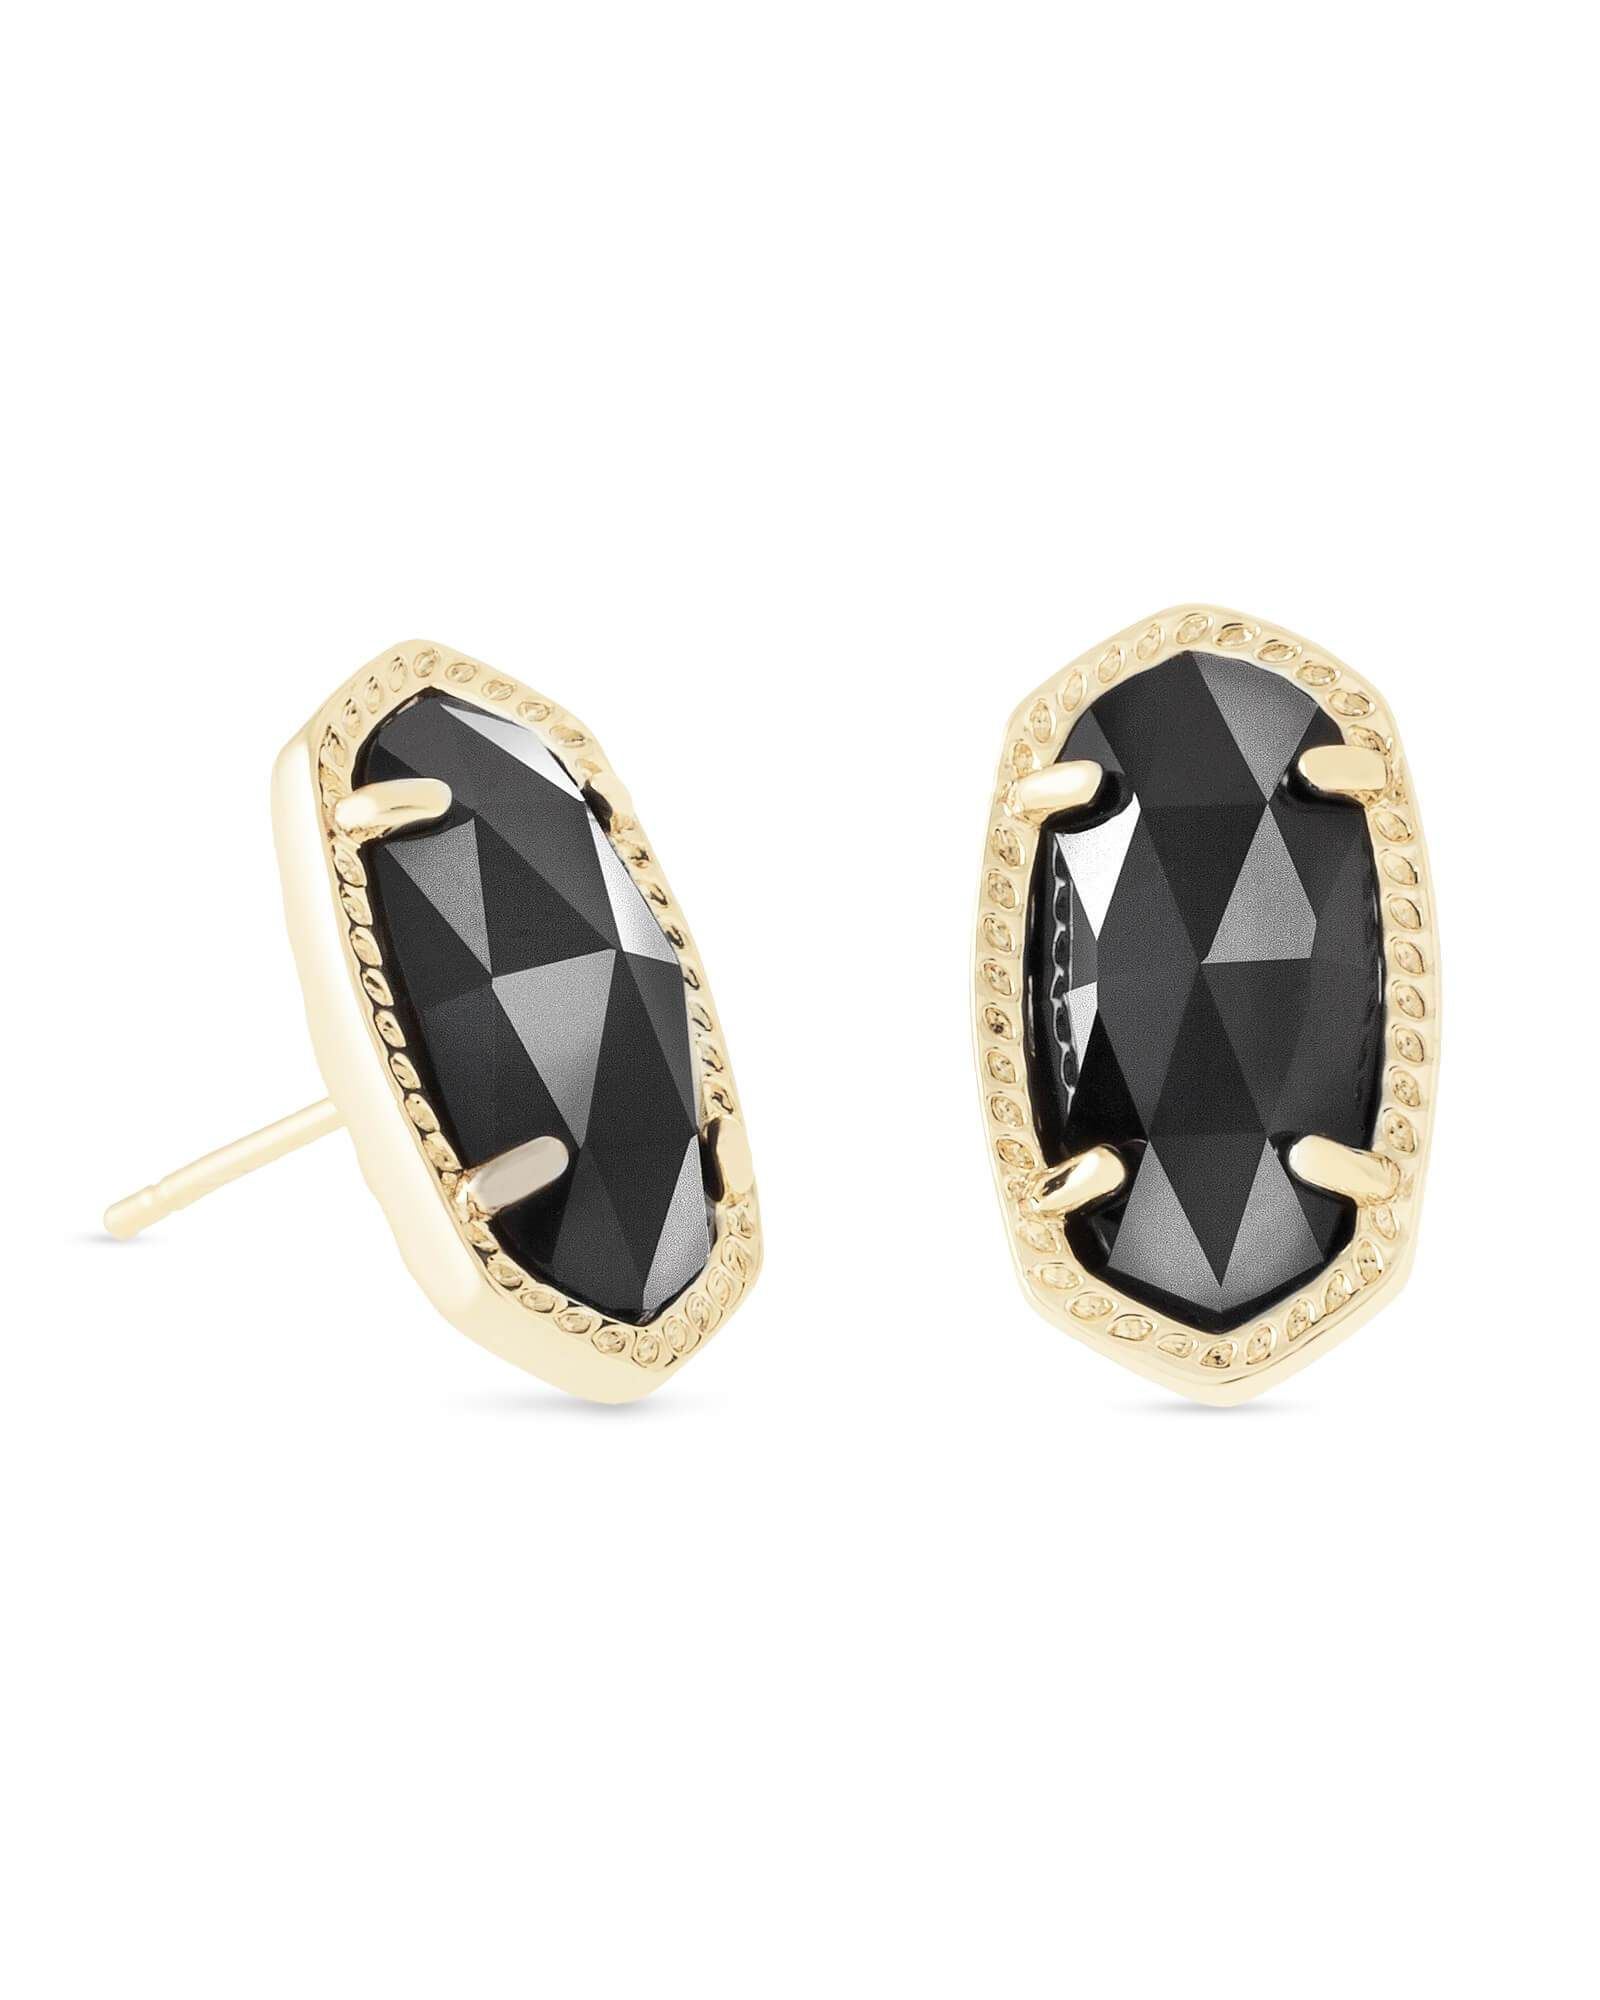 f439f80db Kendra Scott Ellie Earring - Spark a conversation with these stud earrings,  a petite take on Kendra's classic oval silhouette framed in delicate  metallic ...